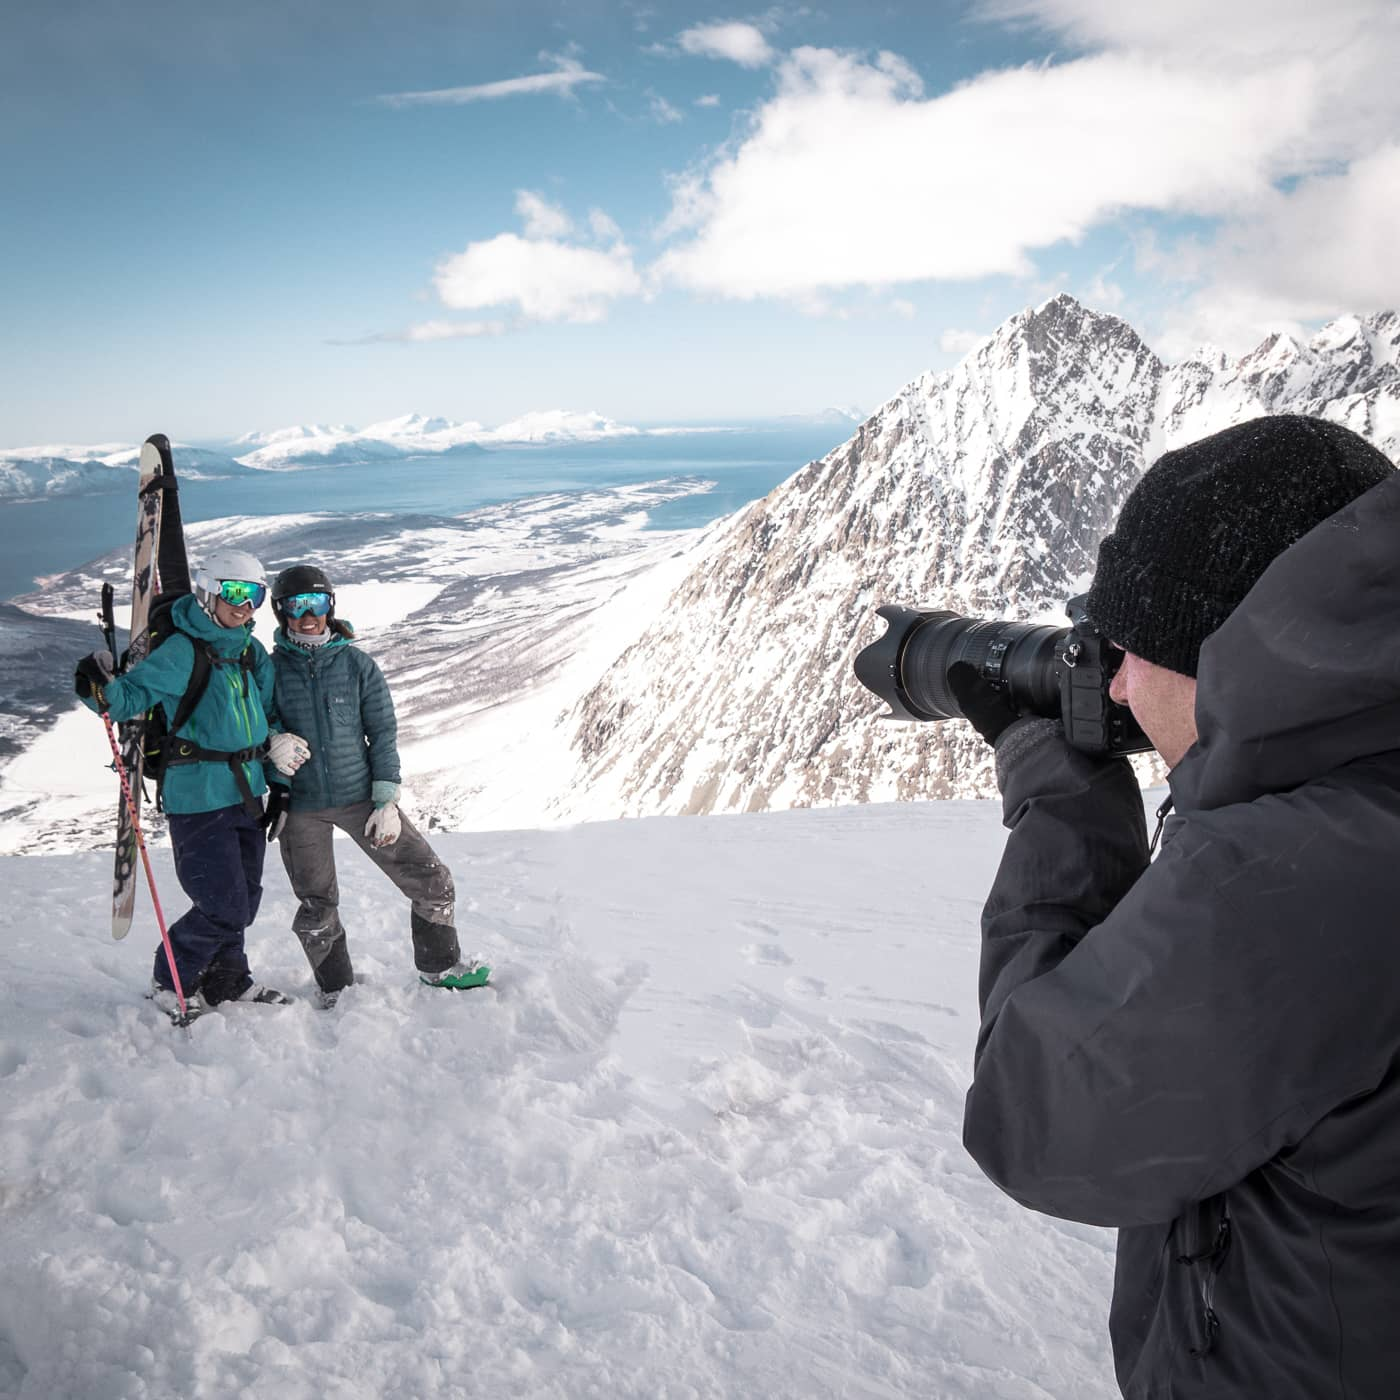 photographer taking a photo of people in snow